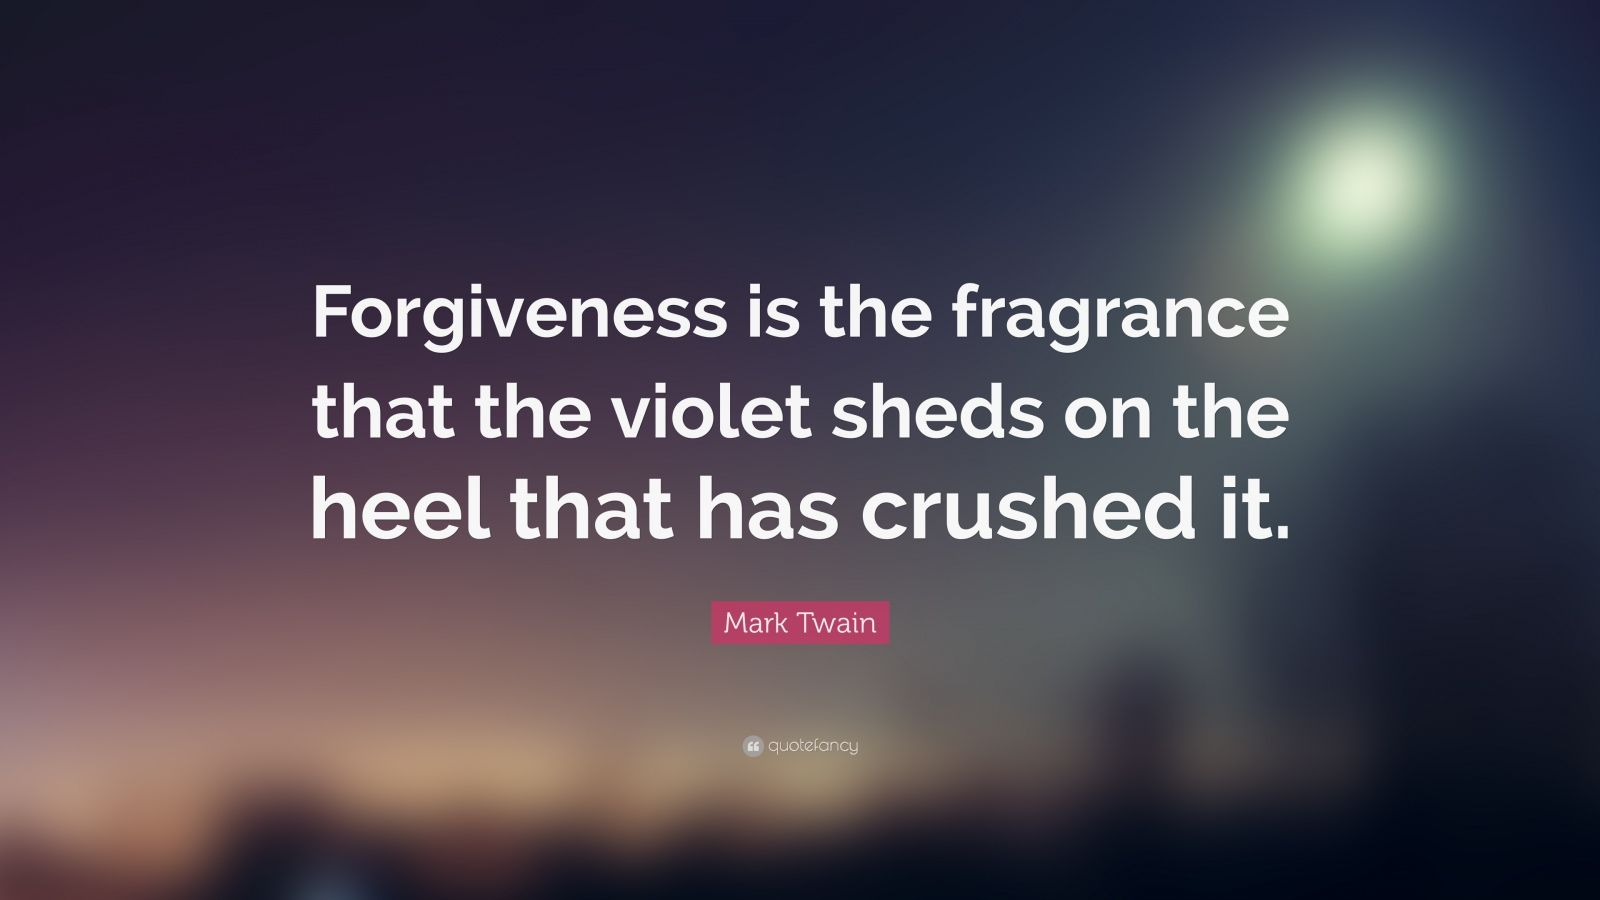 Mother Teresa Quotes Wallpapers Mark Twain Quote Forgiveness Is The Fragrance That The